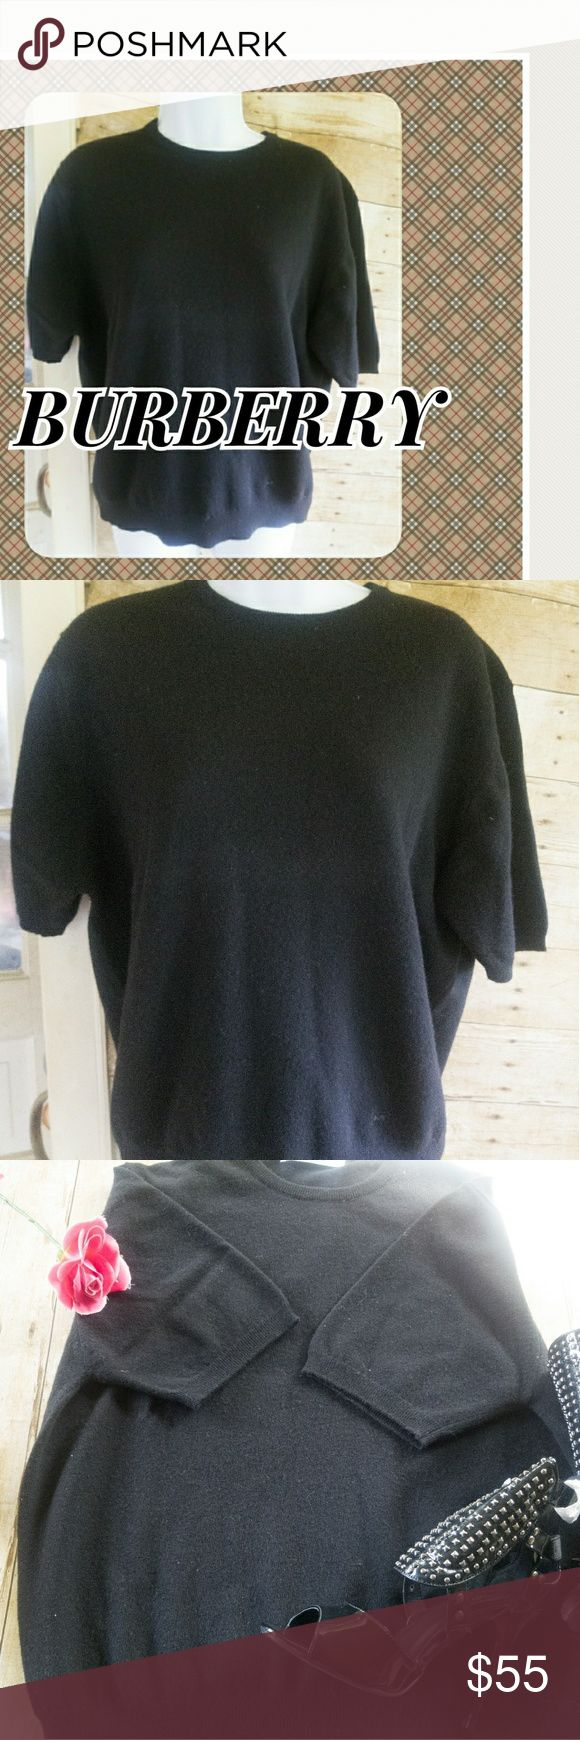 BURBERRY LAMBSWOOL VINYAGE  SWEATER VINTAGE BURBERRY LAMBSWOOL LIGHTWEIGHT SWEATER.  I HAVE HAD THIS VINTAGE PIECE FOR AWHILE AND IT HAS ONLY BEEN WORN TWICE. IT FEELS LIKE CASHMERE. THE COLOR IS ALL BLACK AND THE SIZING ON THE TAG SAYS 46, 117 CM. THIS CAN FIT A MEDIUM TO A LARGE..REALLY NICE PEICE.  I AM TAKING REASONABLE OFFERS ON THIS. WILL BE DRY CLEANED BEFORE SHIPPING OUT AS IT HAS BEEN SITTING..pre loved no snags stains or holes Burberry Skirts